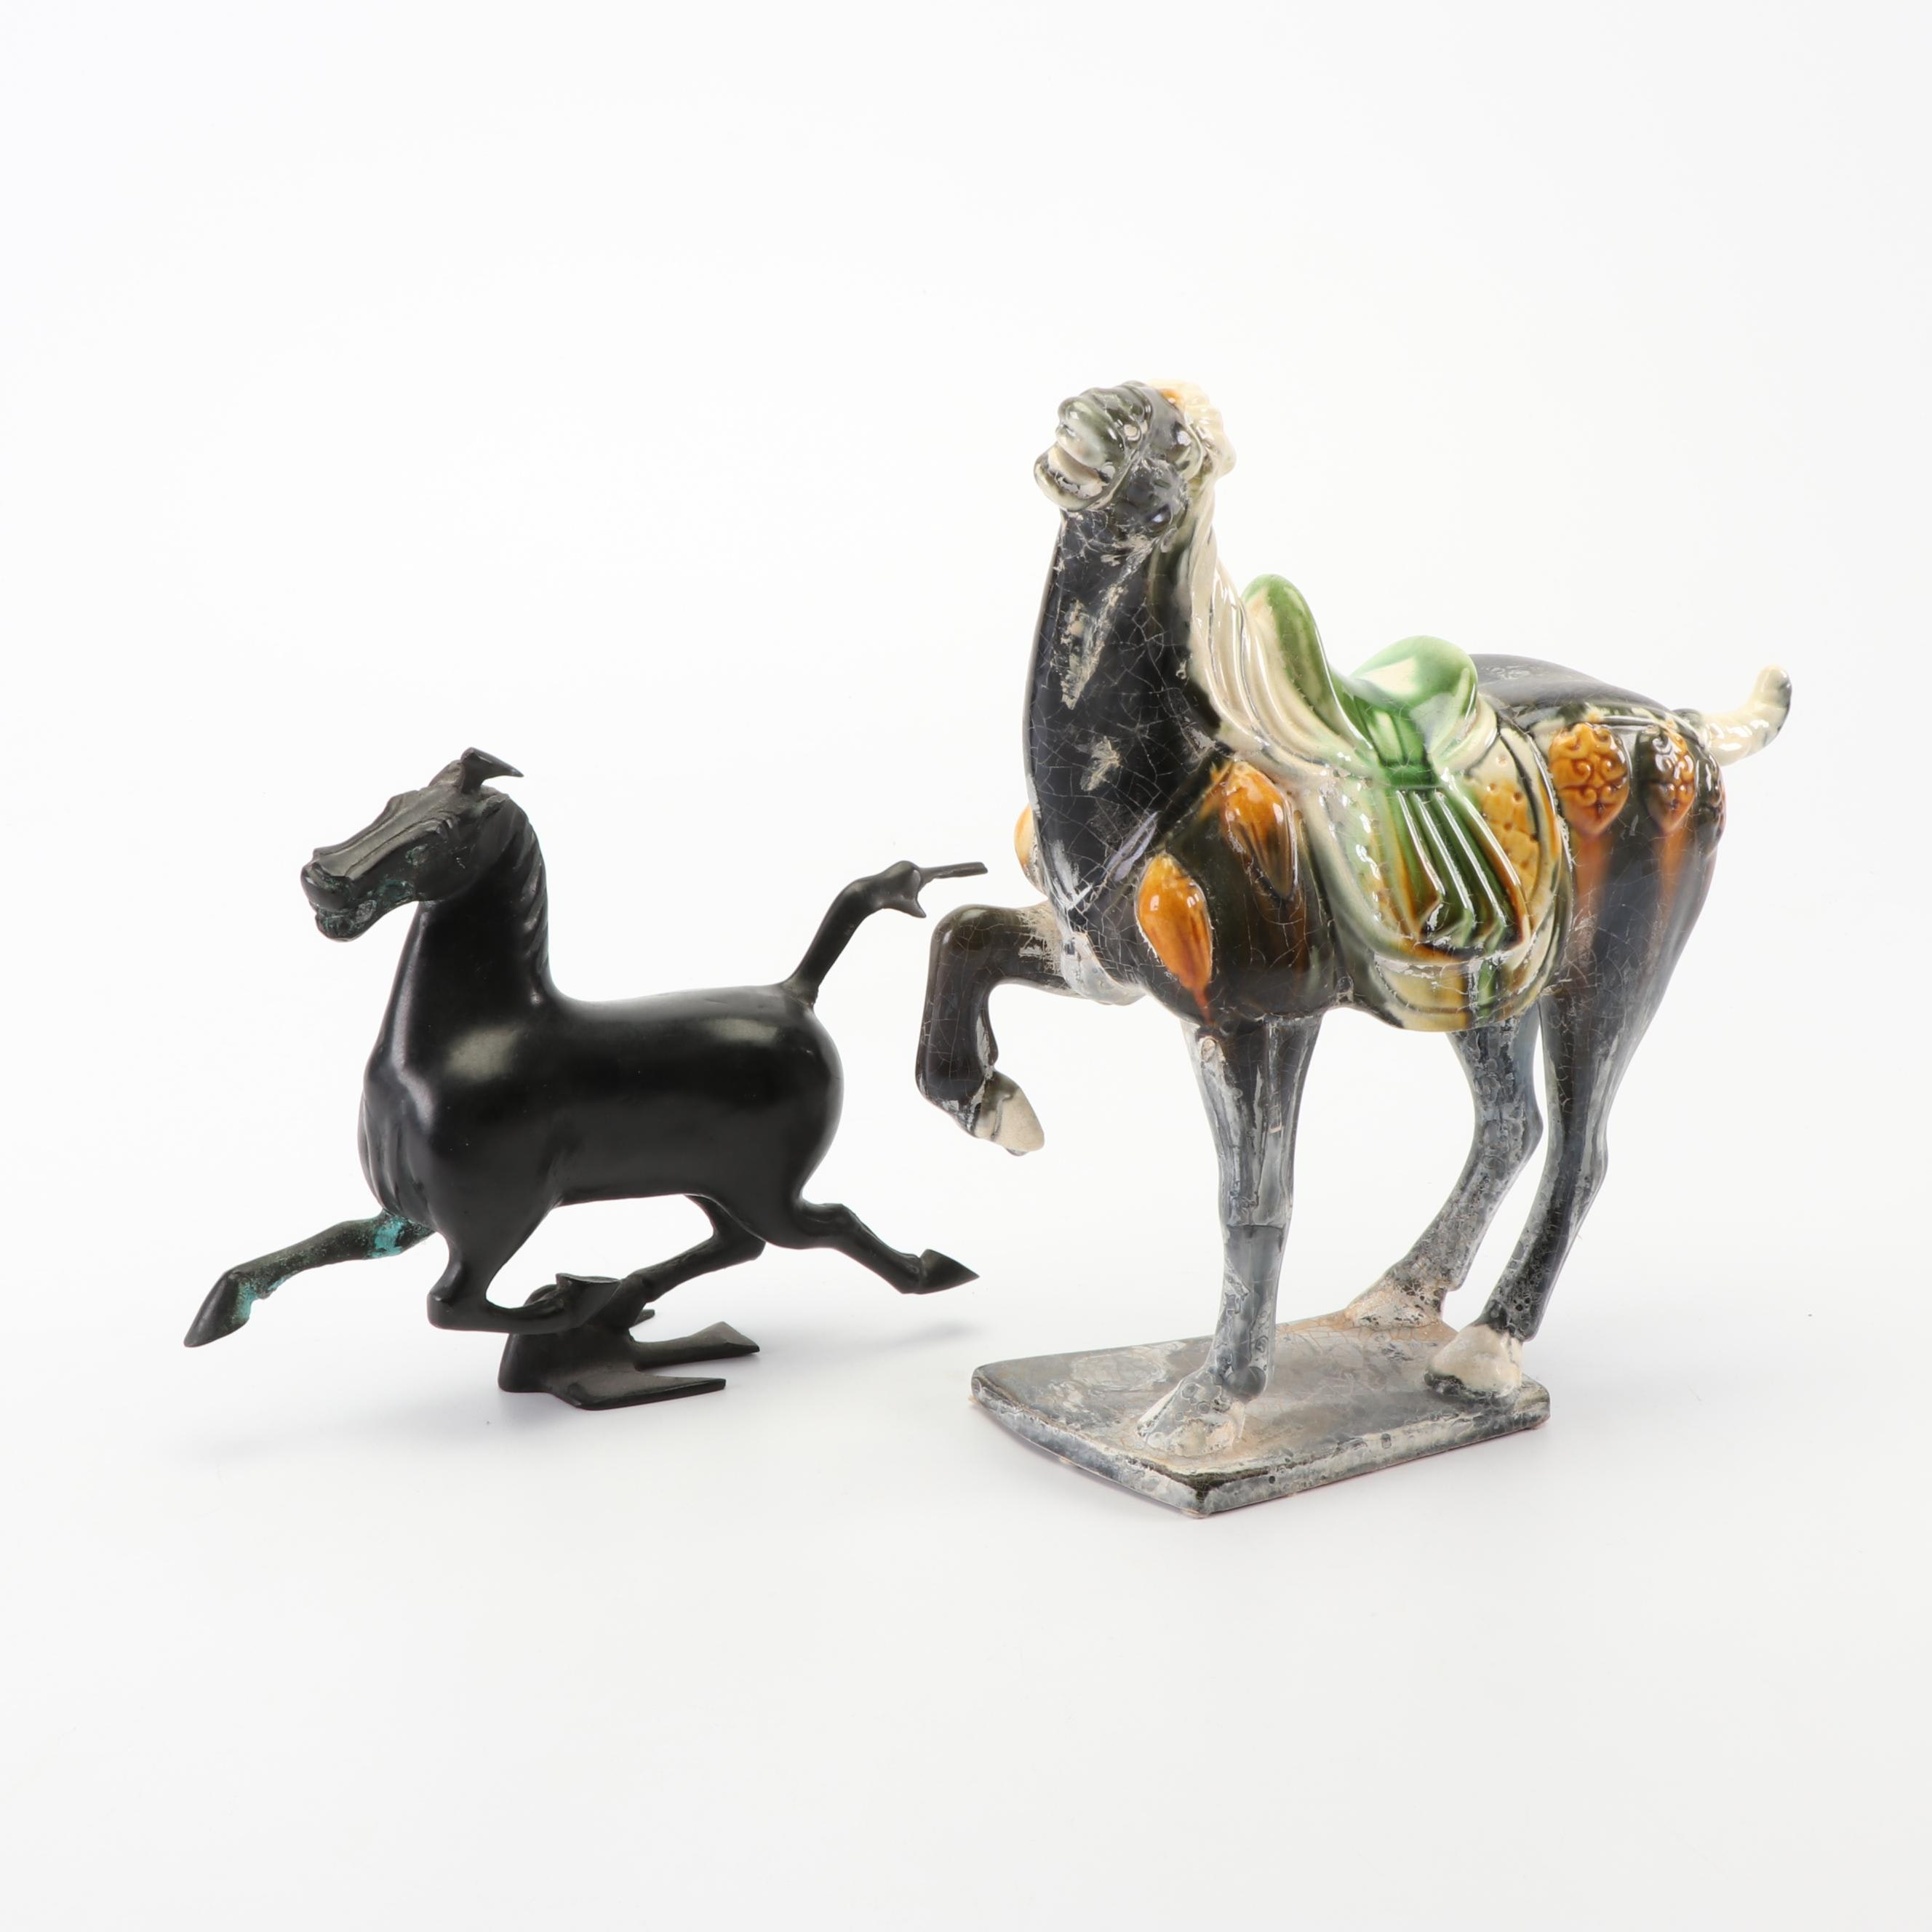 Asian Inspired Metal and Ceramic Horse Sculptures